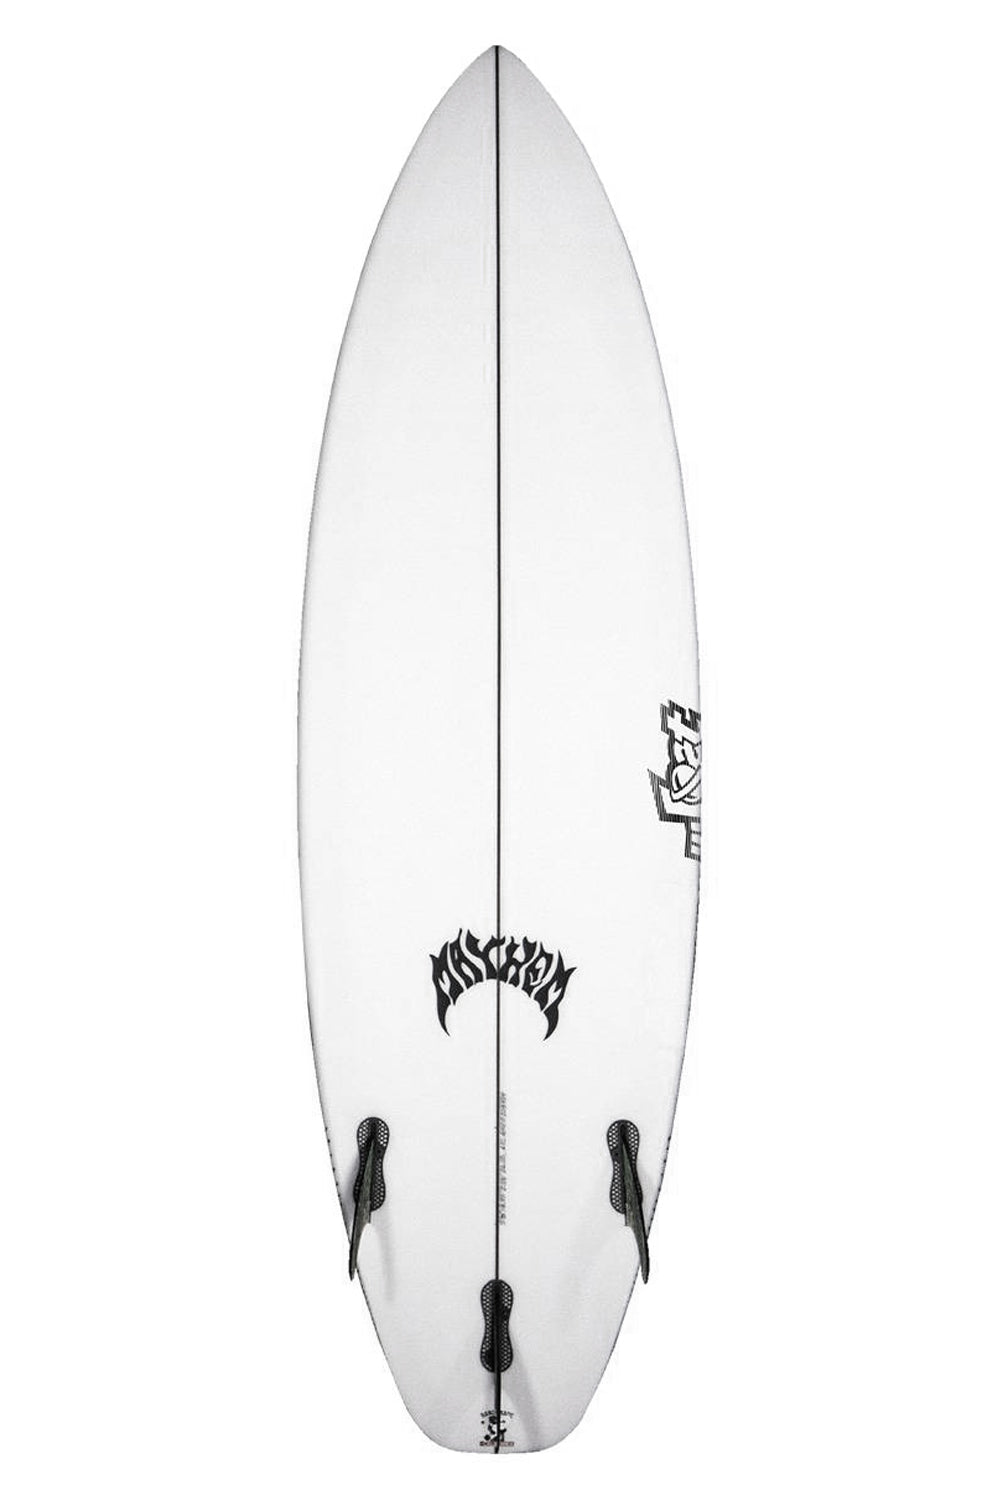 Lost Mayhem Sub Driver 2.0 Surfboard